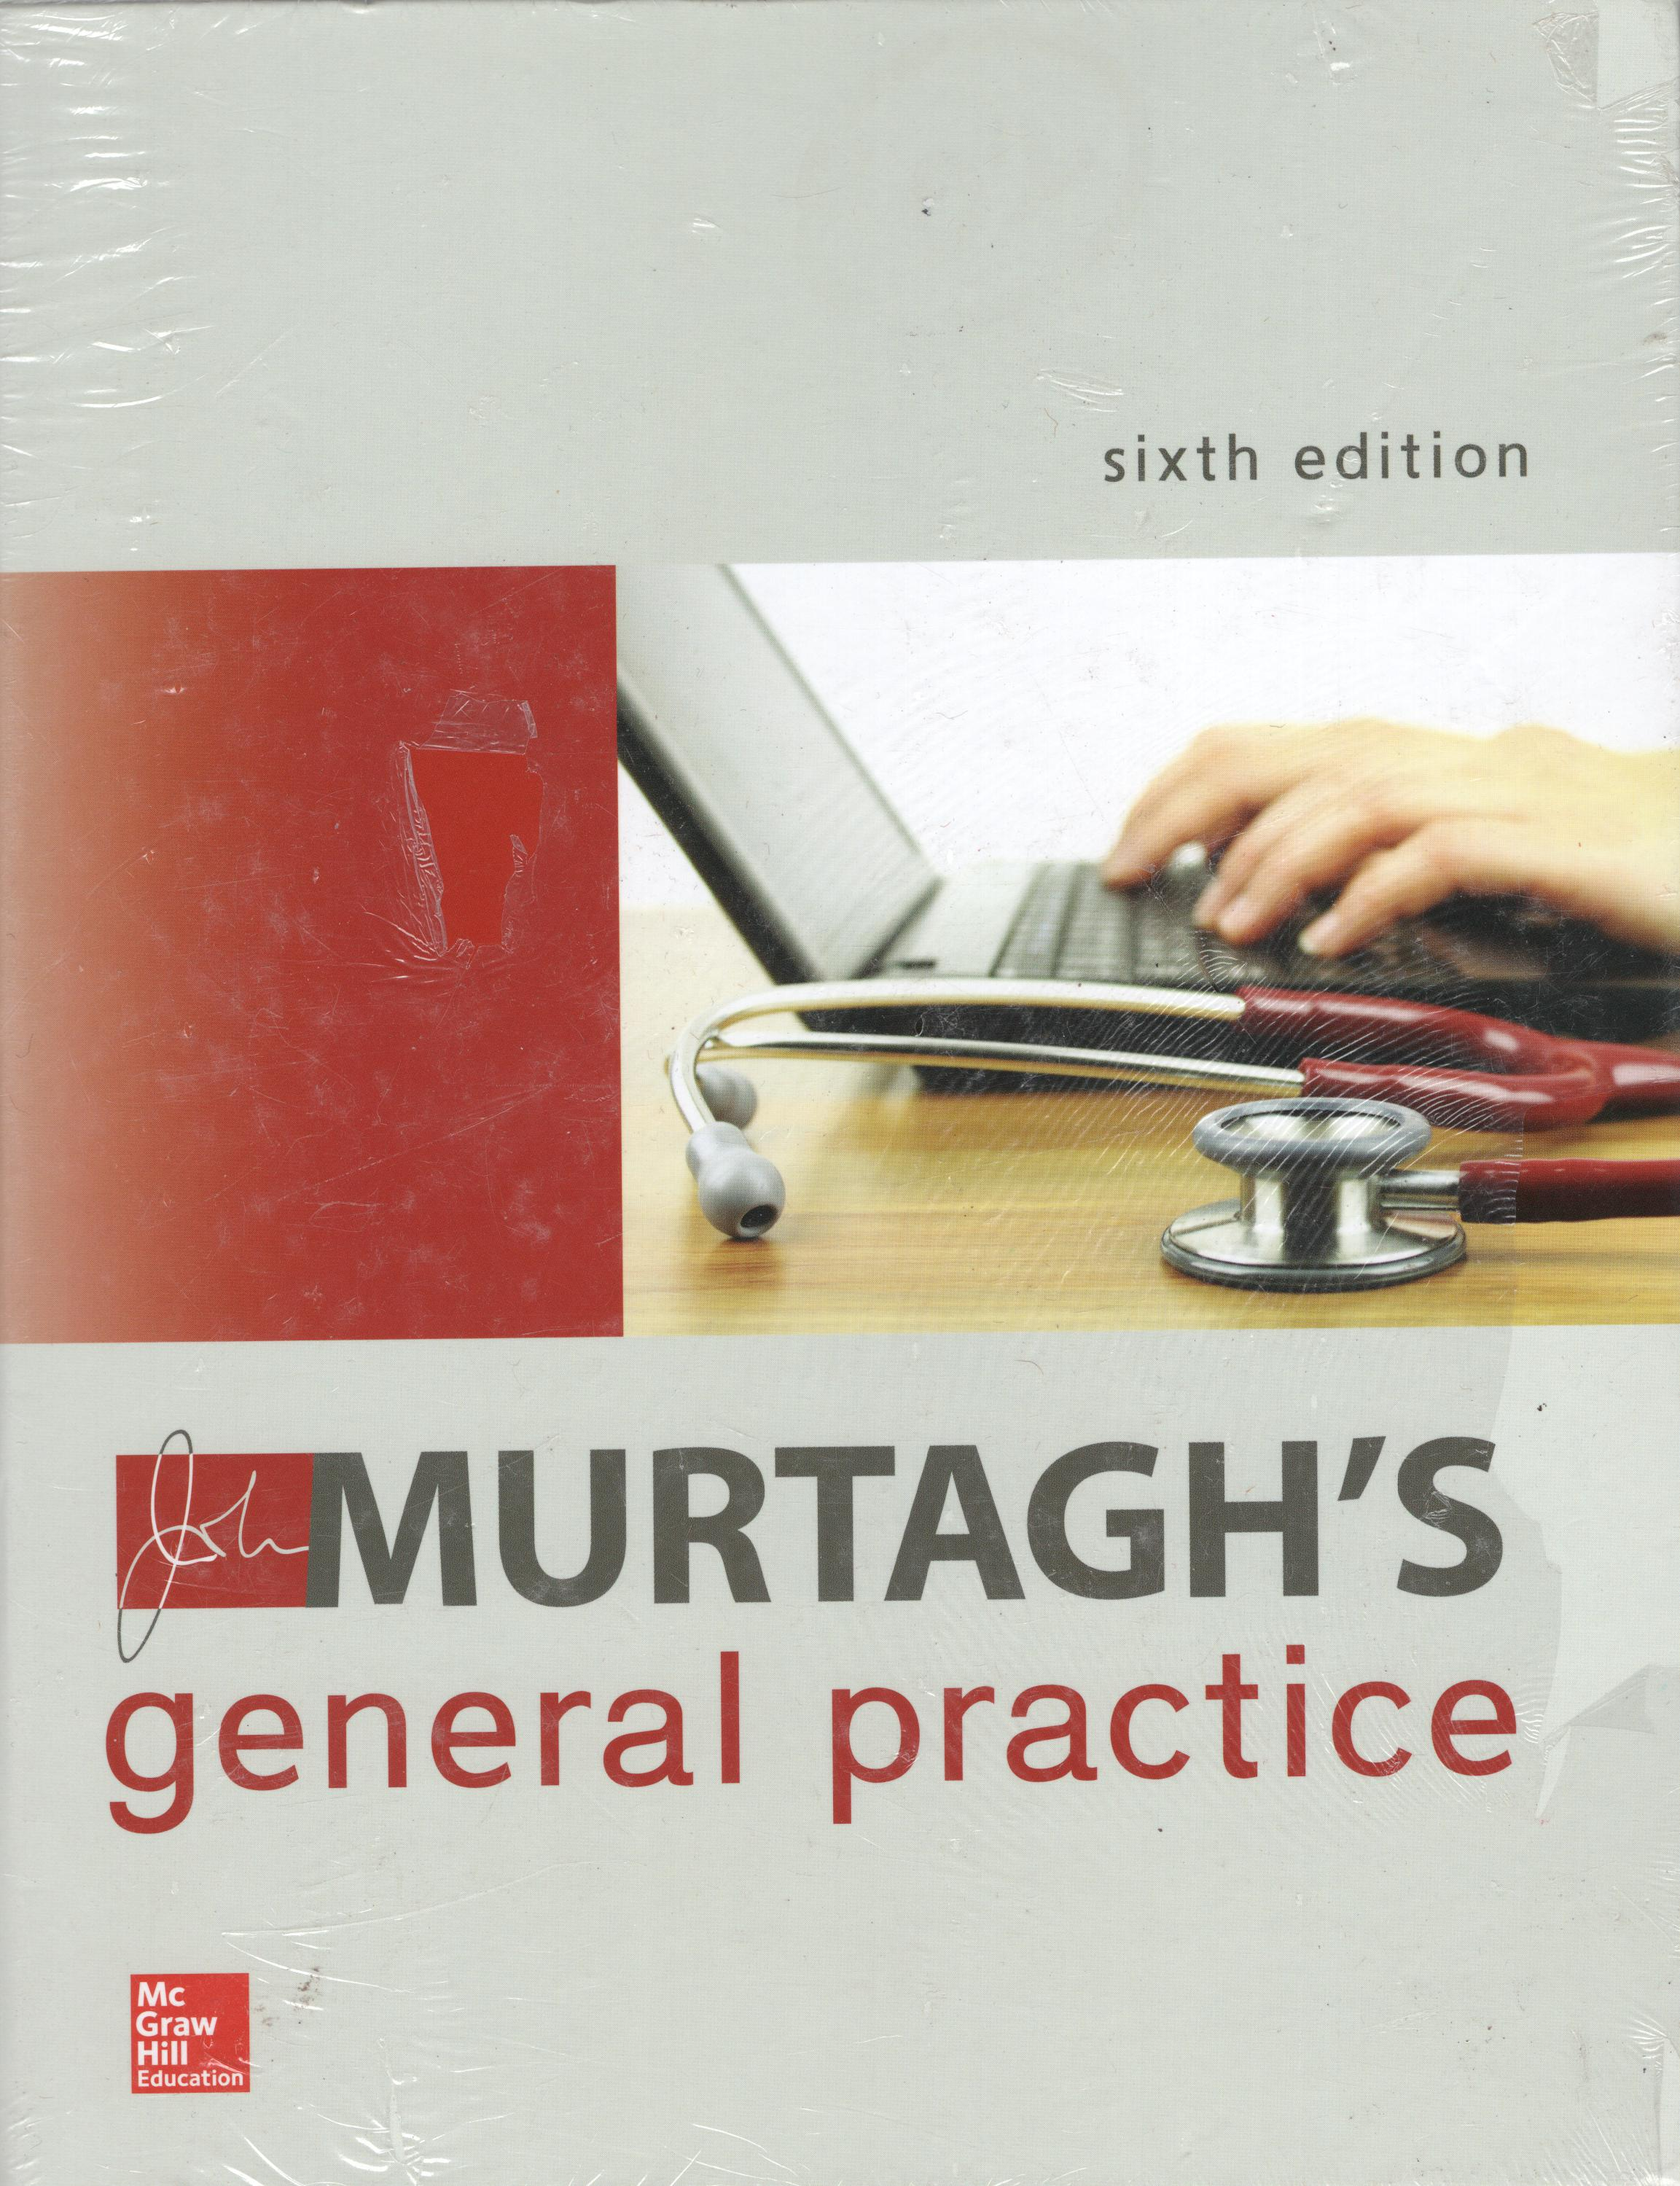 MURTAGHS GENERAL PRACTICE